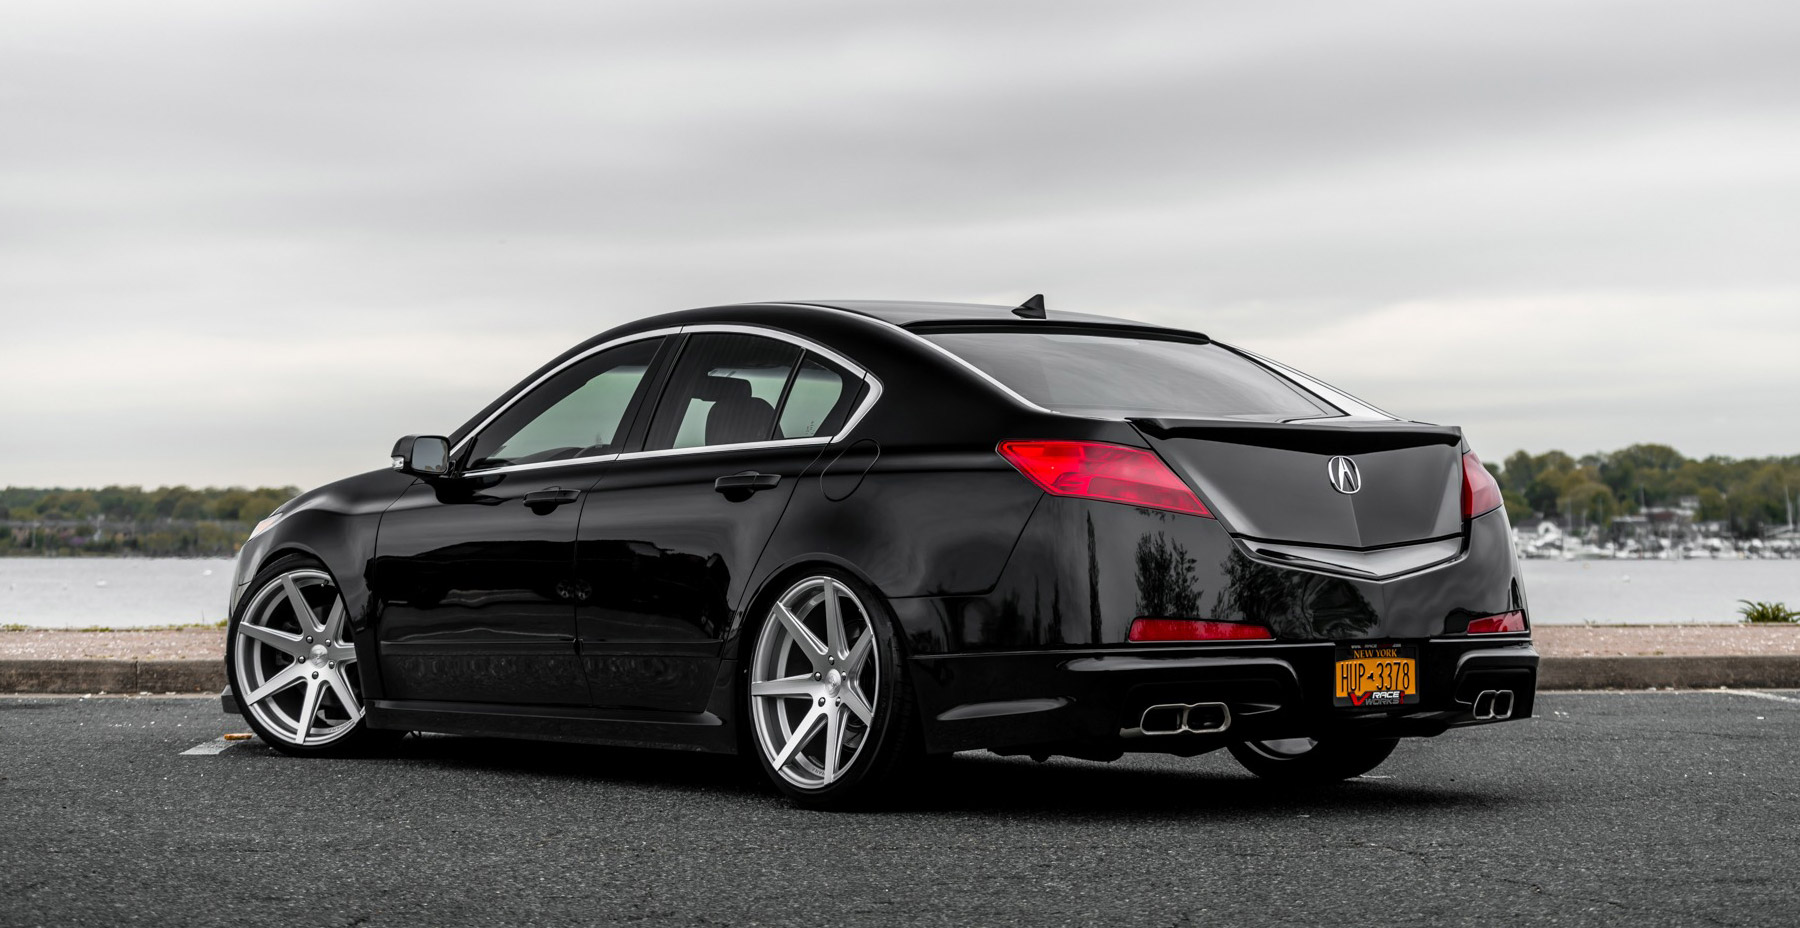 Black Acura TL x Rohana RC7 Wheels (Finished in Machined Silver)